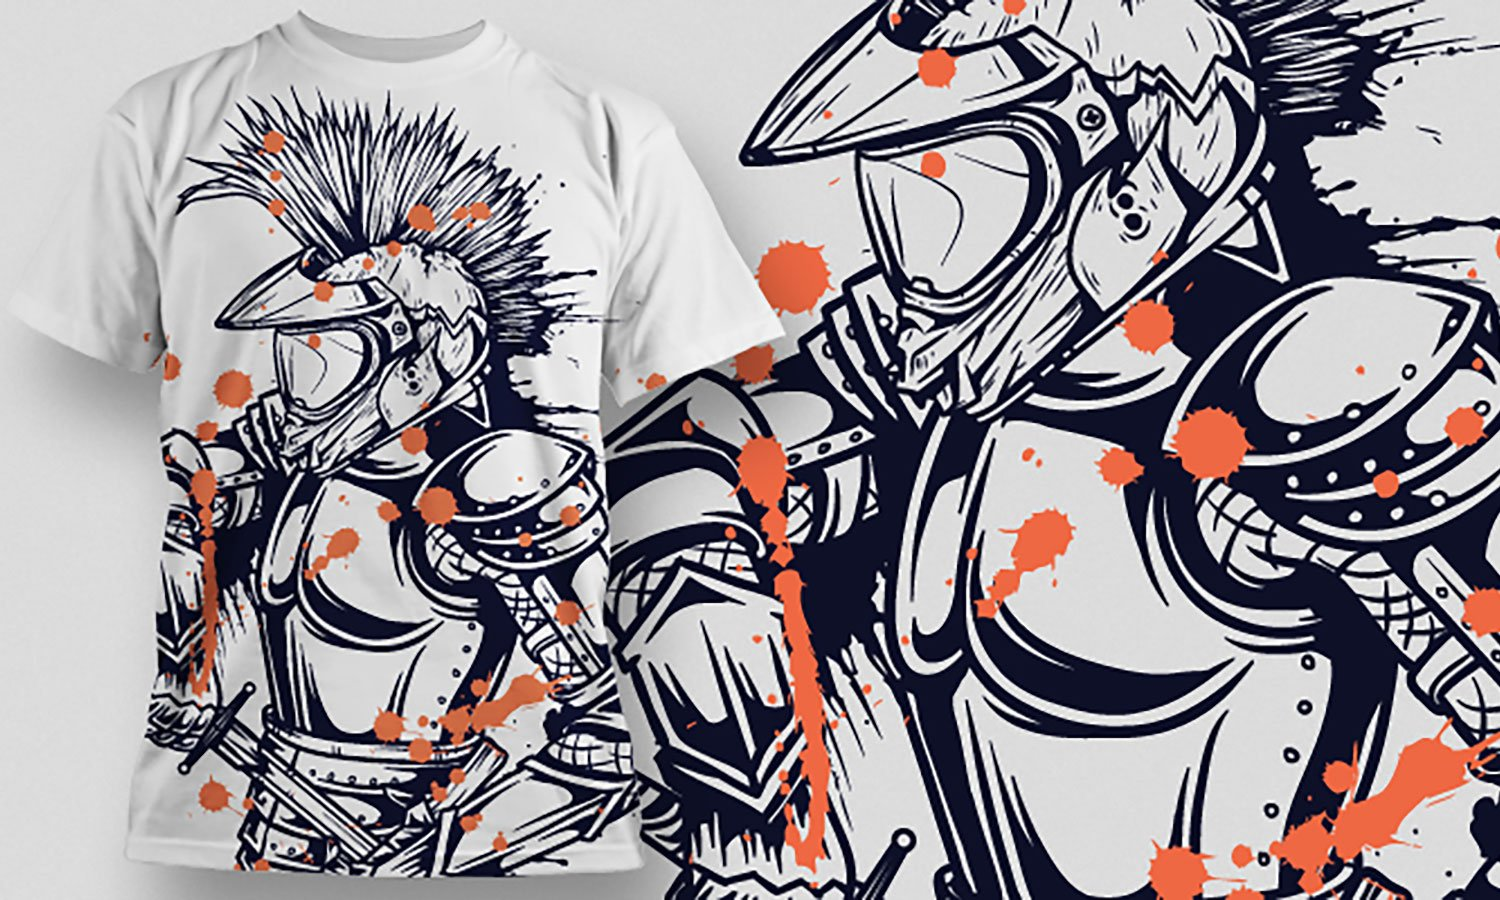 Knight - Printed T-Shirt for Men, Women and Kids - TS334